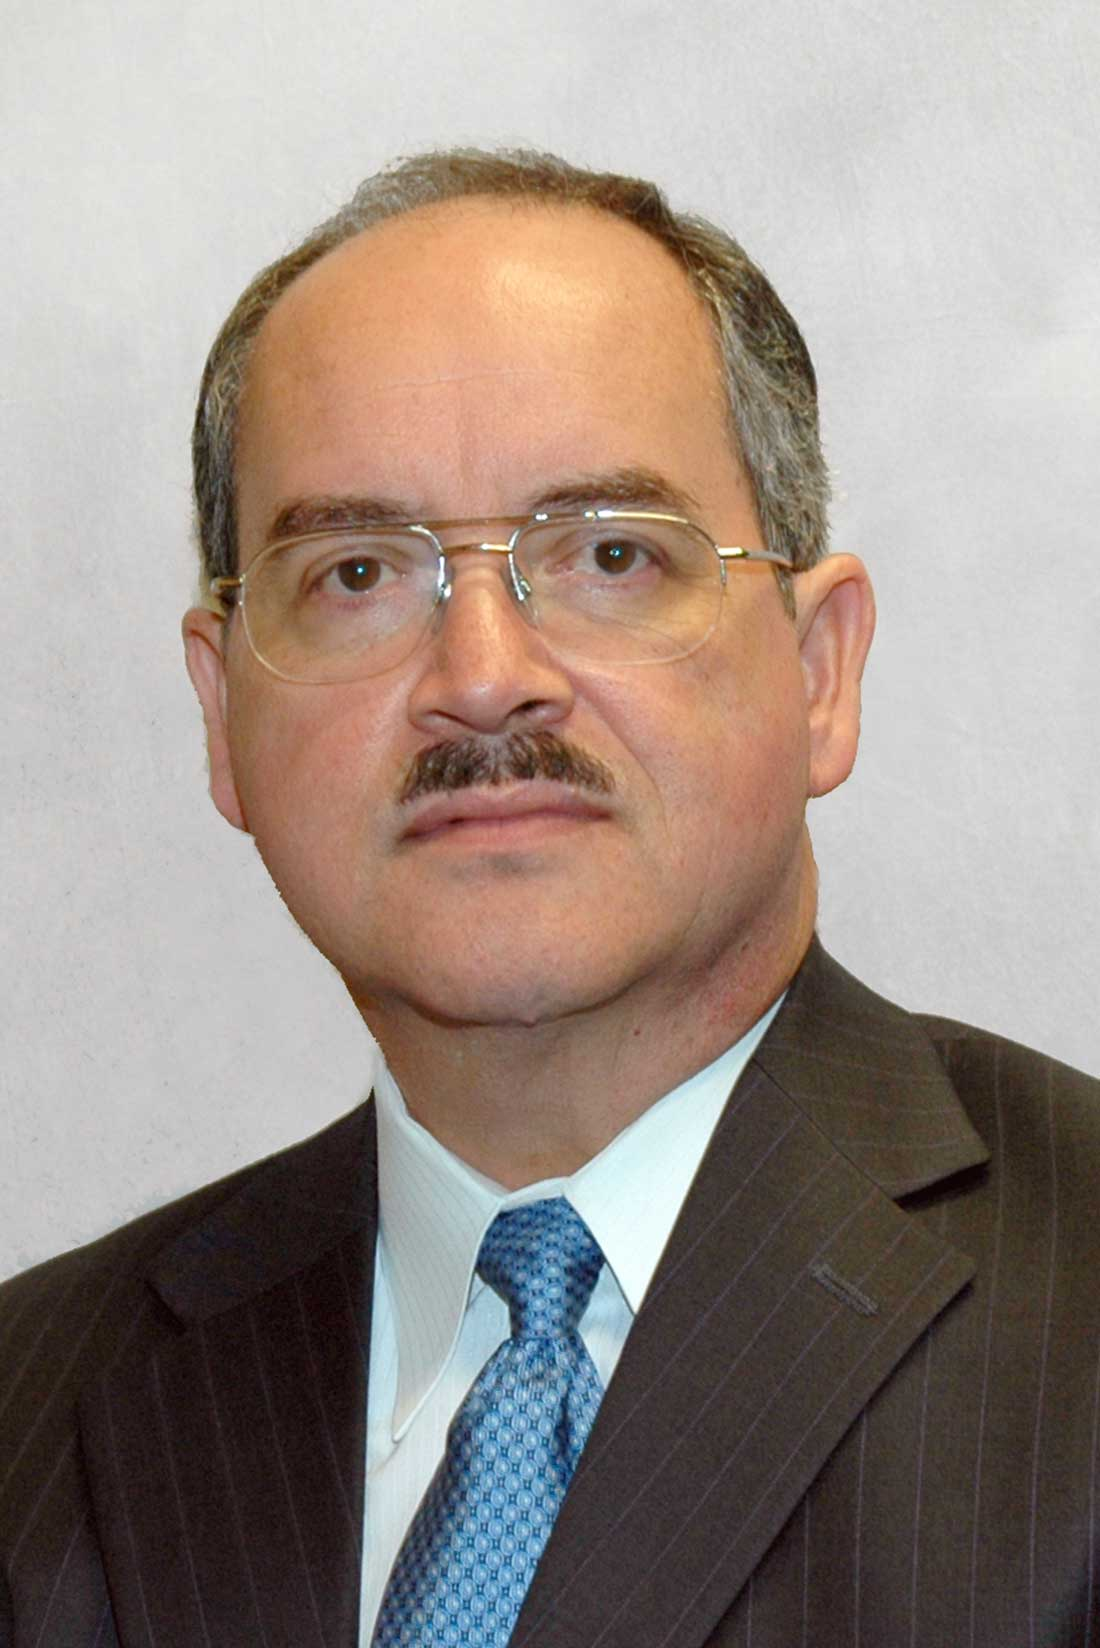 Carlos Figueroa : Senior Vice-President, Chief Financial Officer